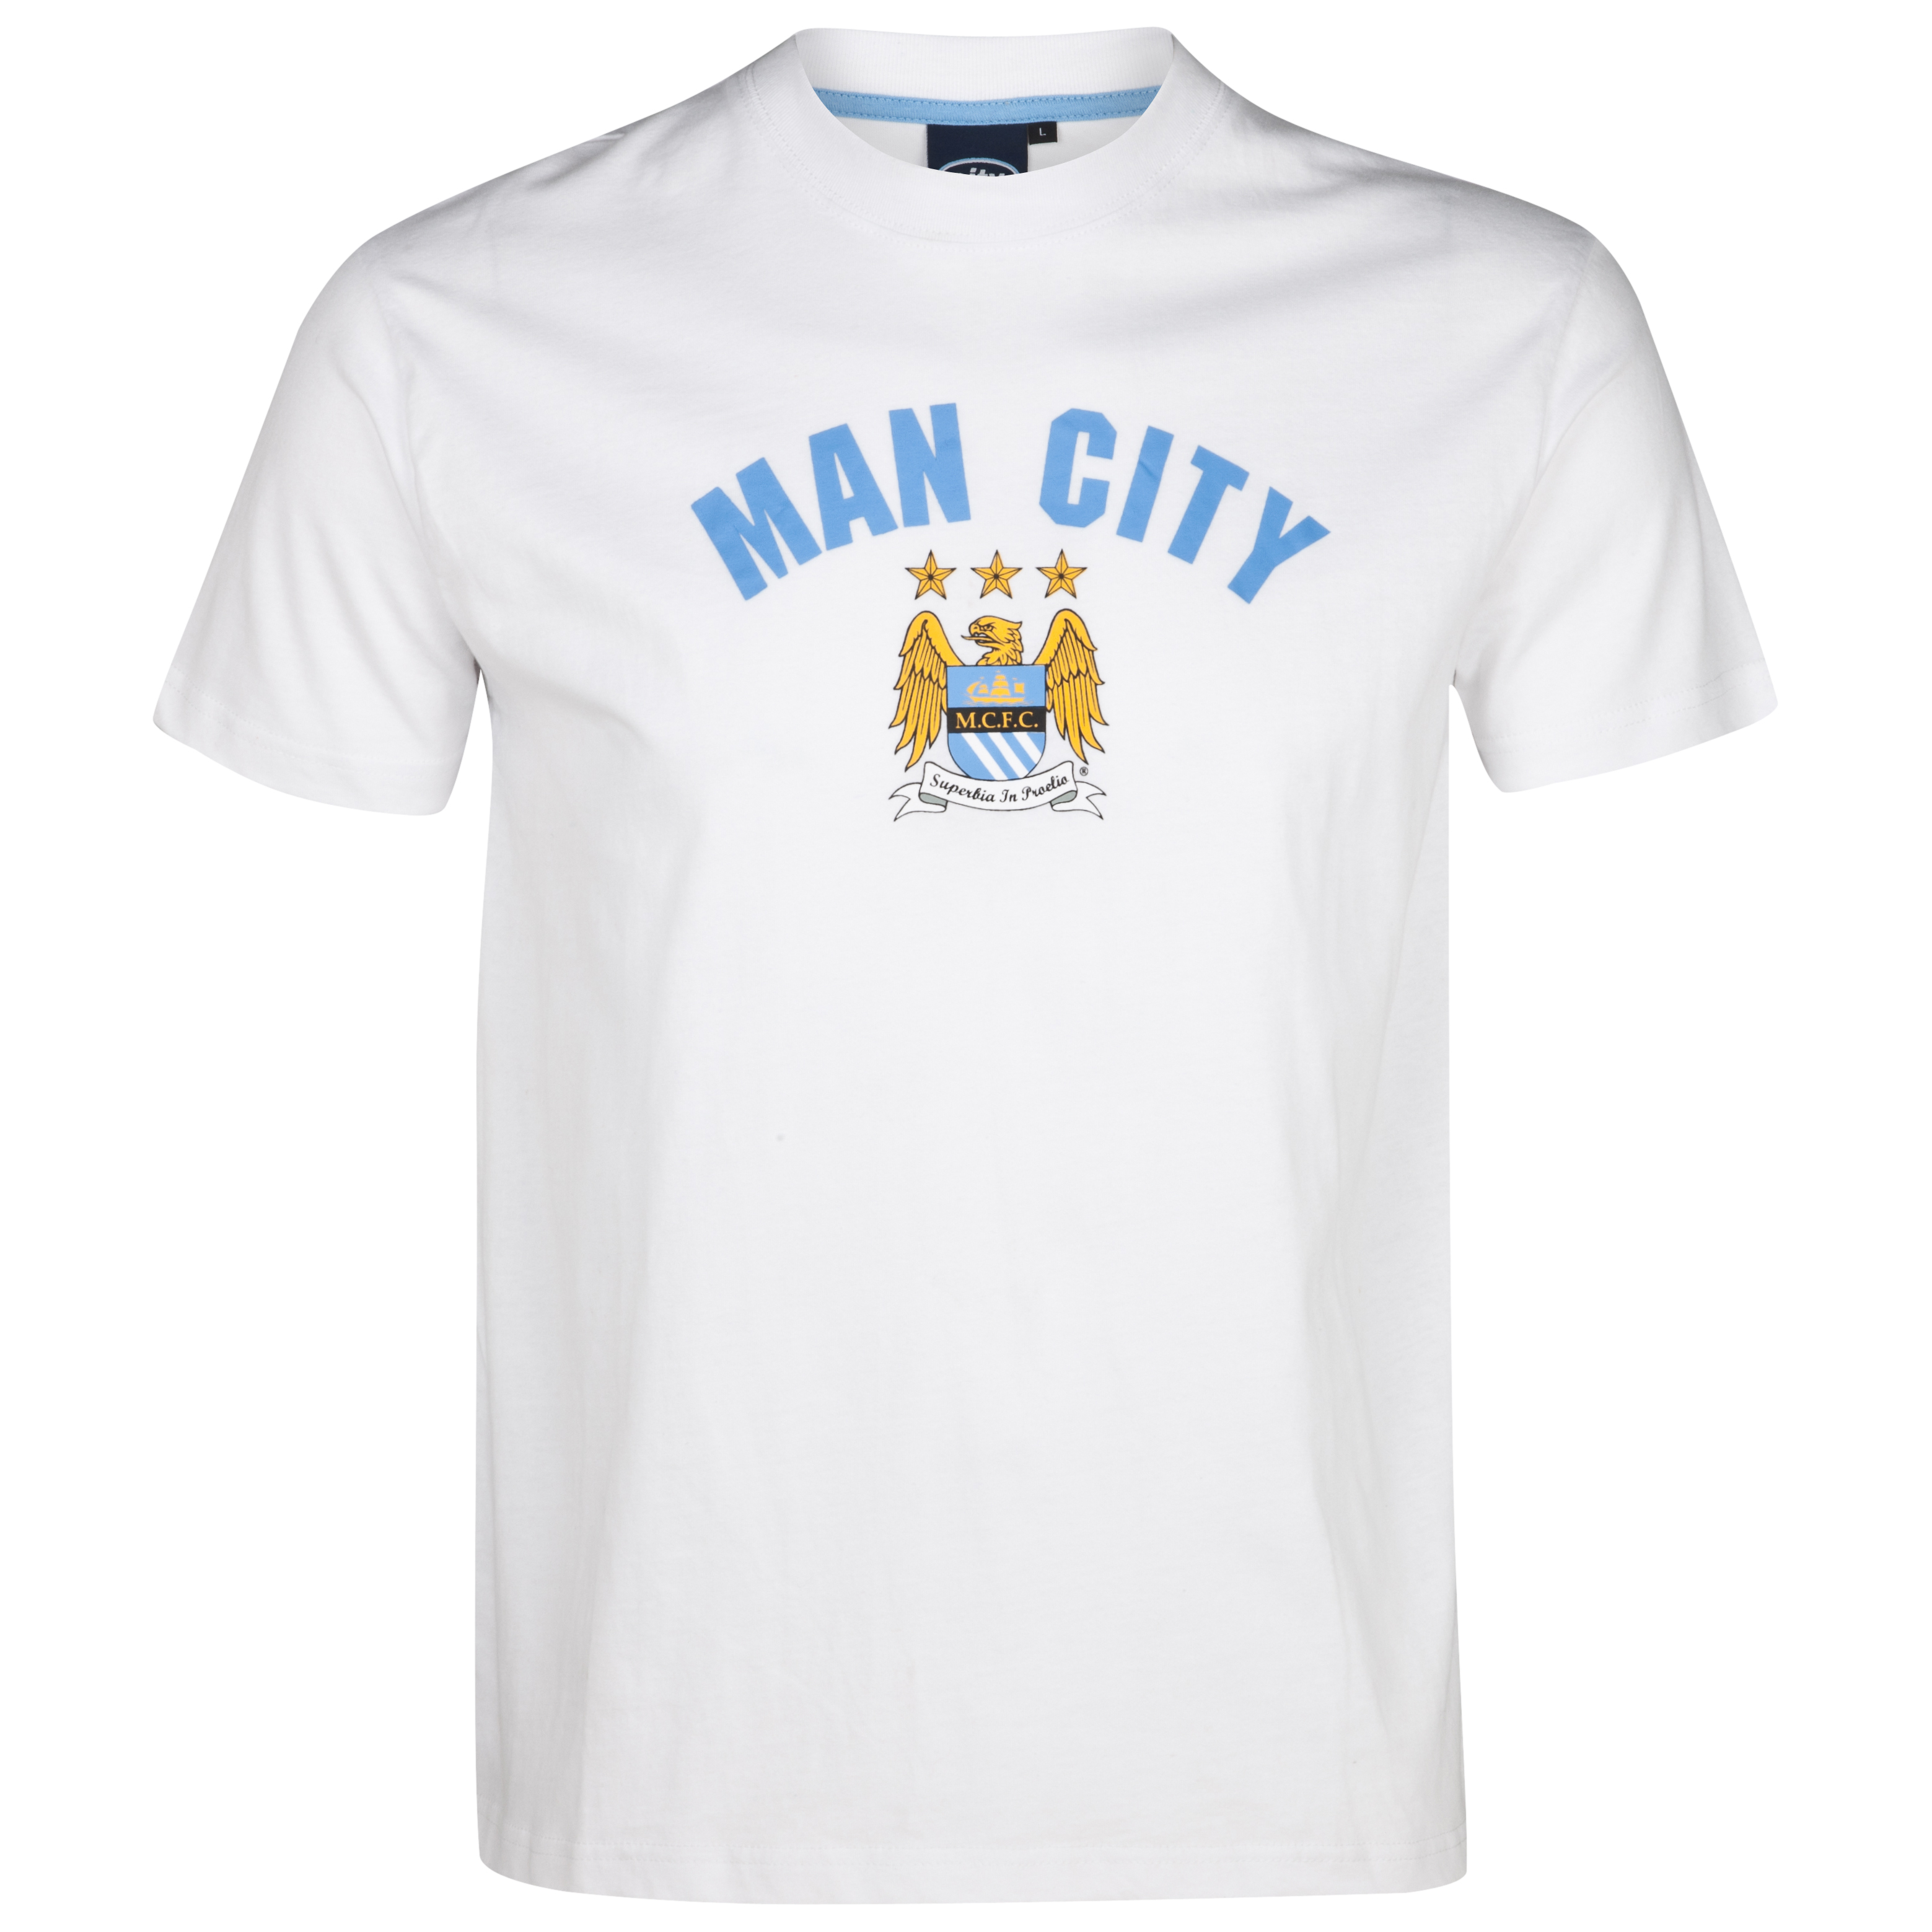 Manchester City Essential Staley T-Shirt - White